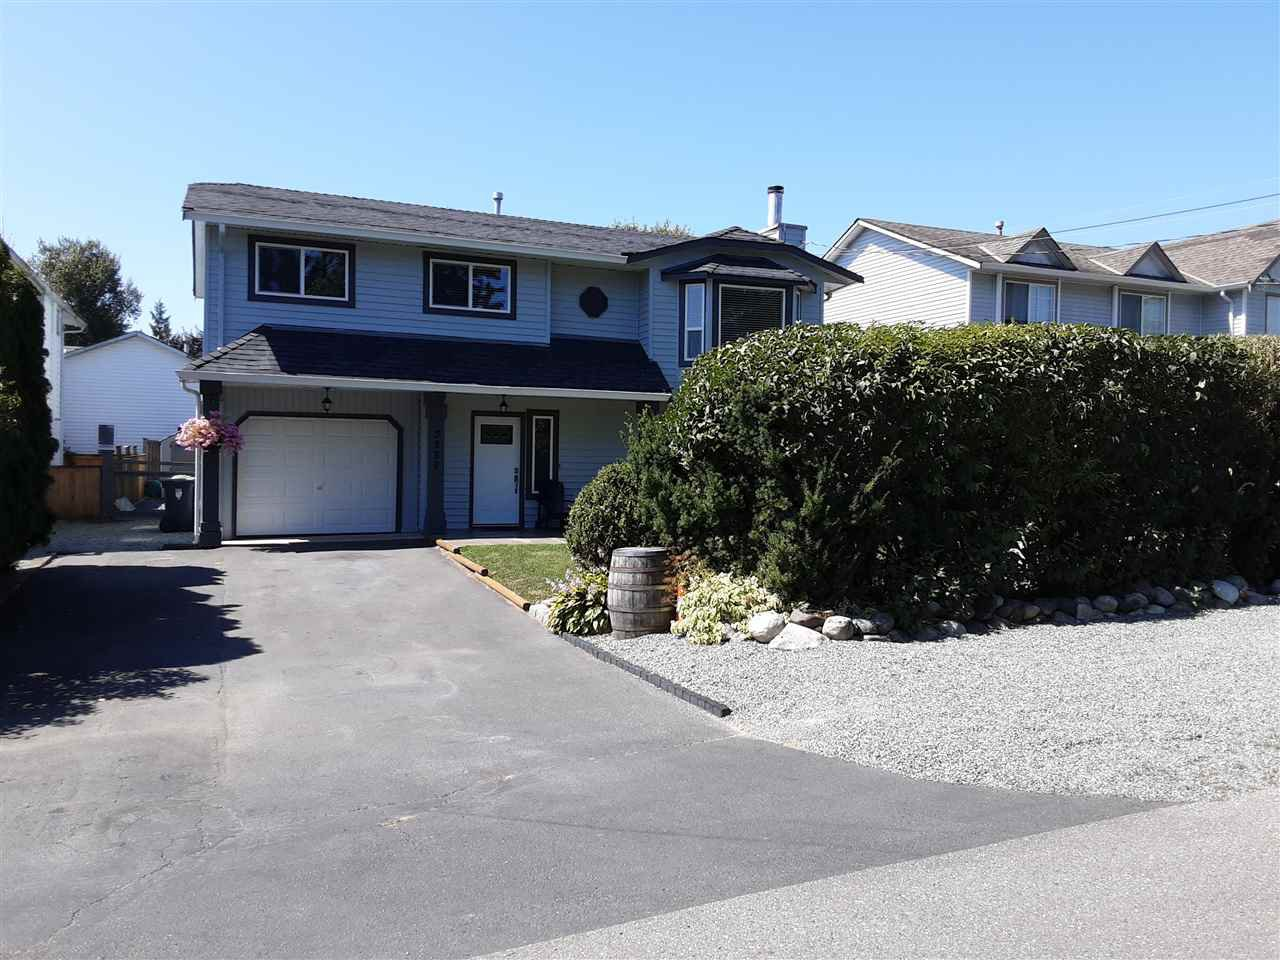 Photo 3: Photos: 3287 274 Street in Langley: Aldergrove Langley House for sale : MLS®# R2484329